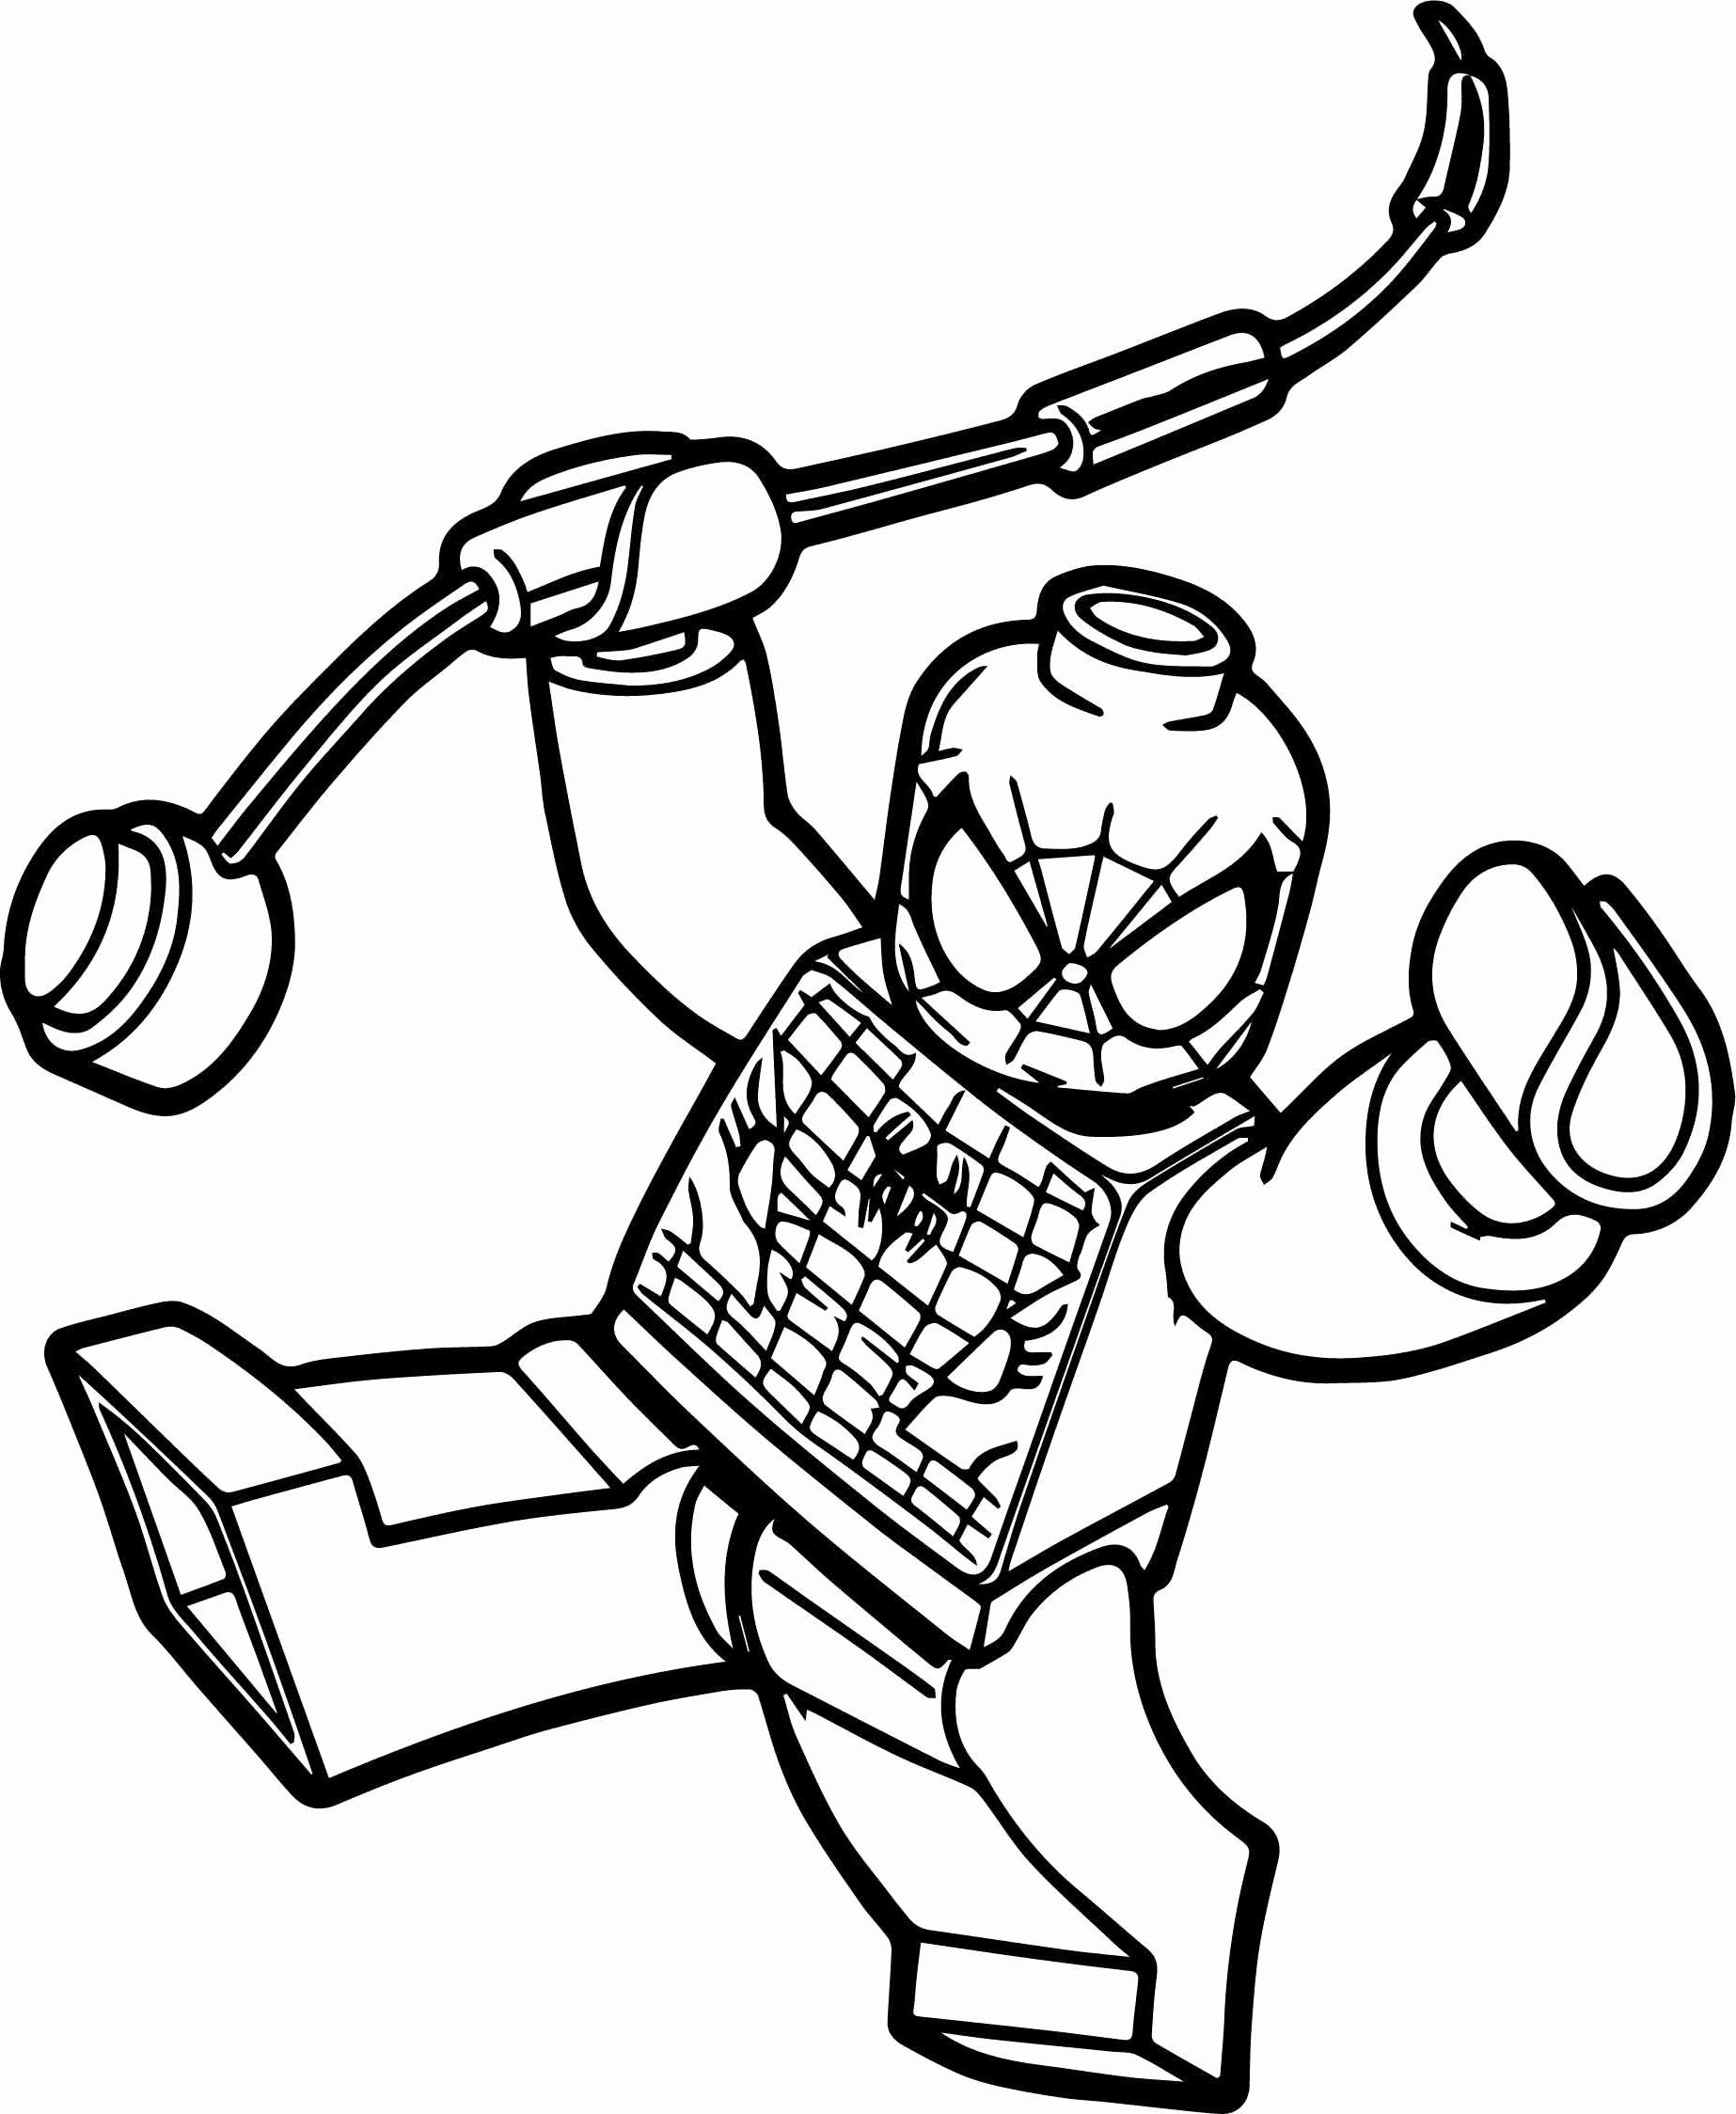 Lego Spiderman Coloring Page Best Of Lego Spiderman Coloring Pages